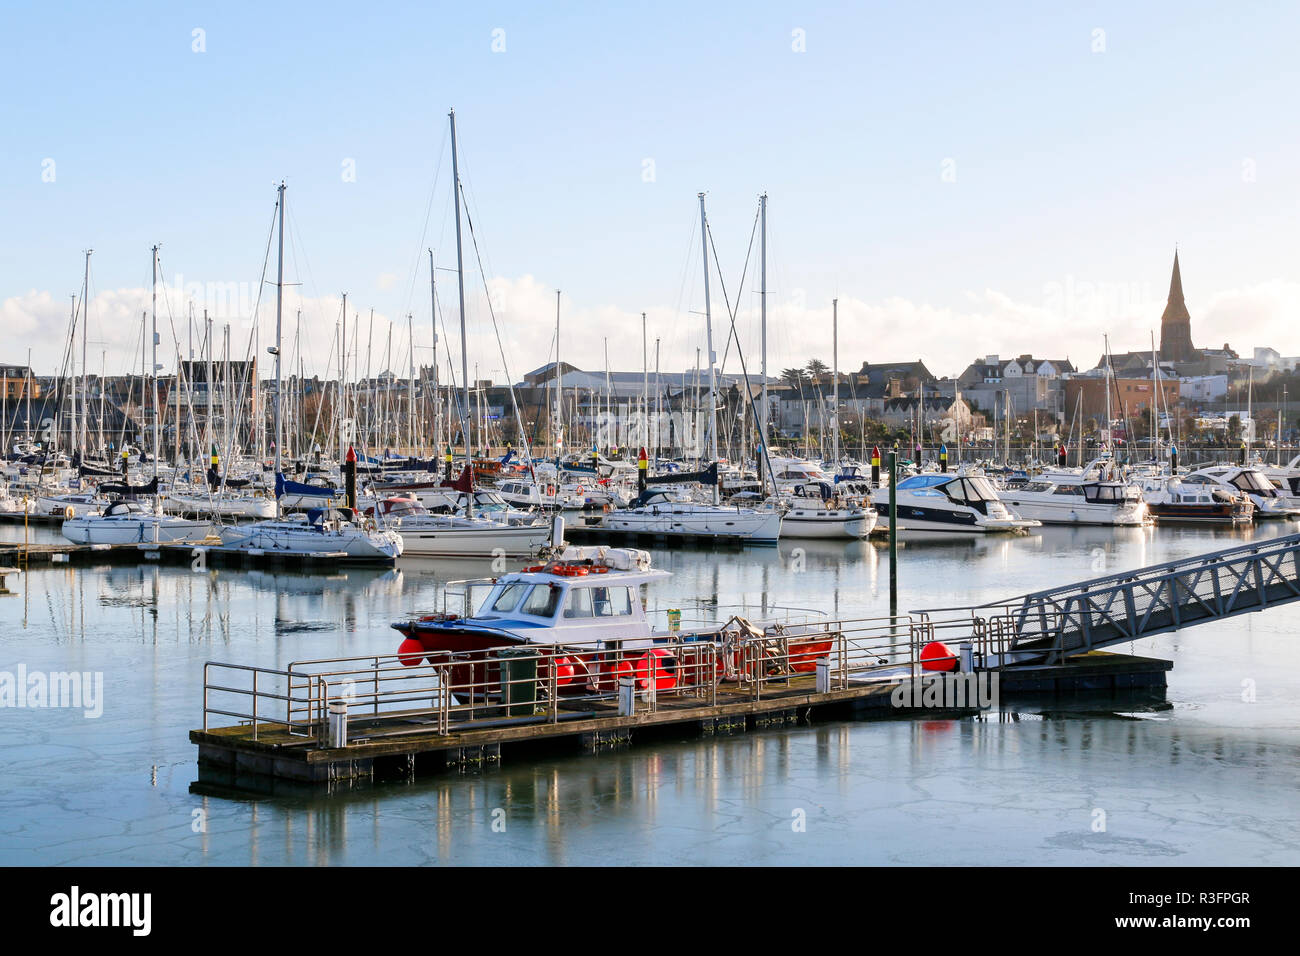 View across the marina in Bangor, County Down, Northern Ireland with the town in the background - Stock Image